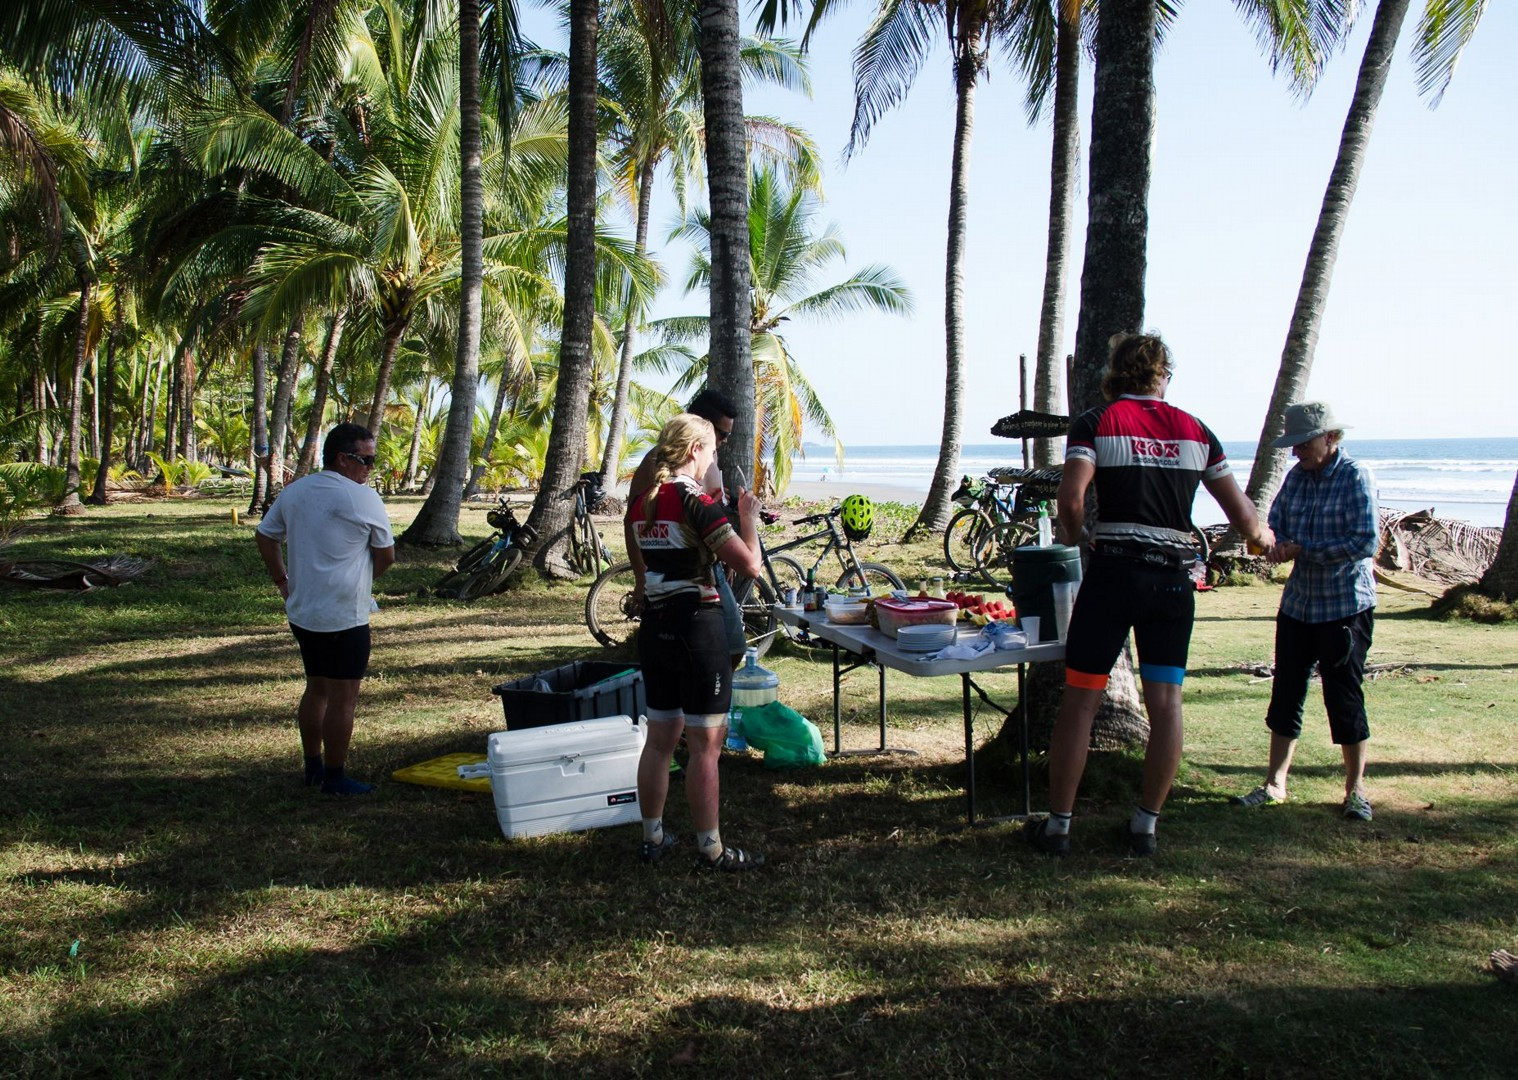 skedaddle-guides-costa-rica-family-cycling-holiday.jpg - Costa Rica - Volcanoes and Valleys - Guided Family Cycling Holiday - Family Cycling